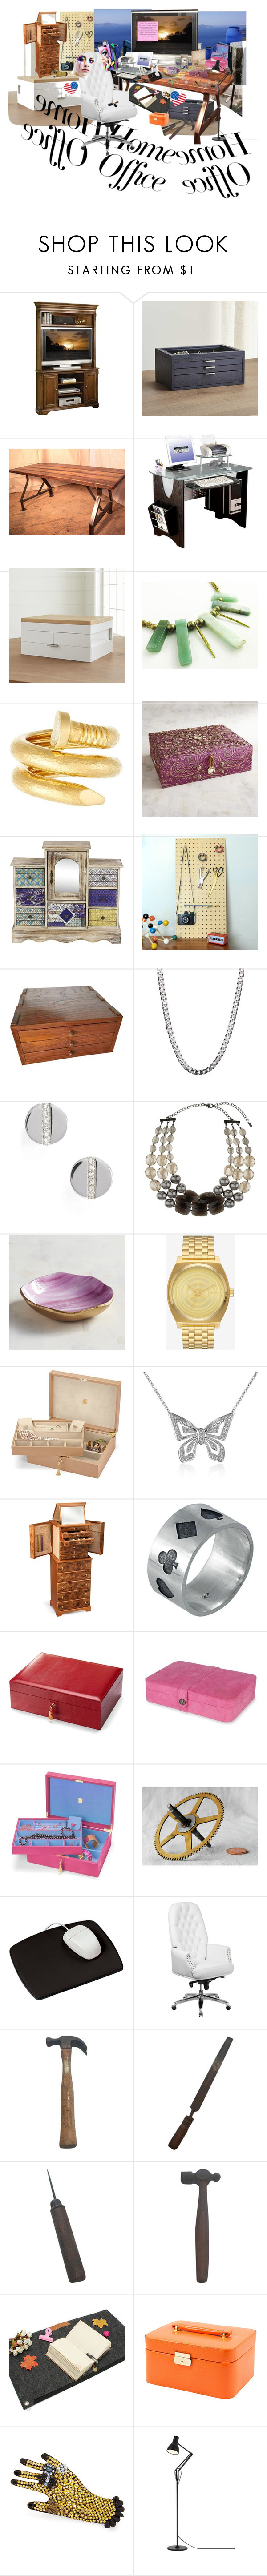 Home Jewelry Store by jaeleesjewelry liked on Polyvore